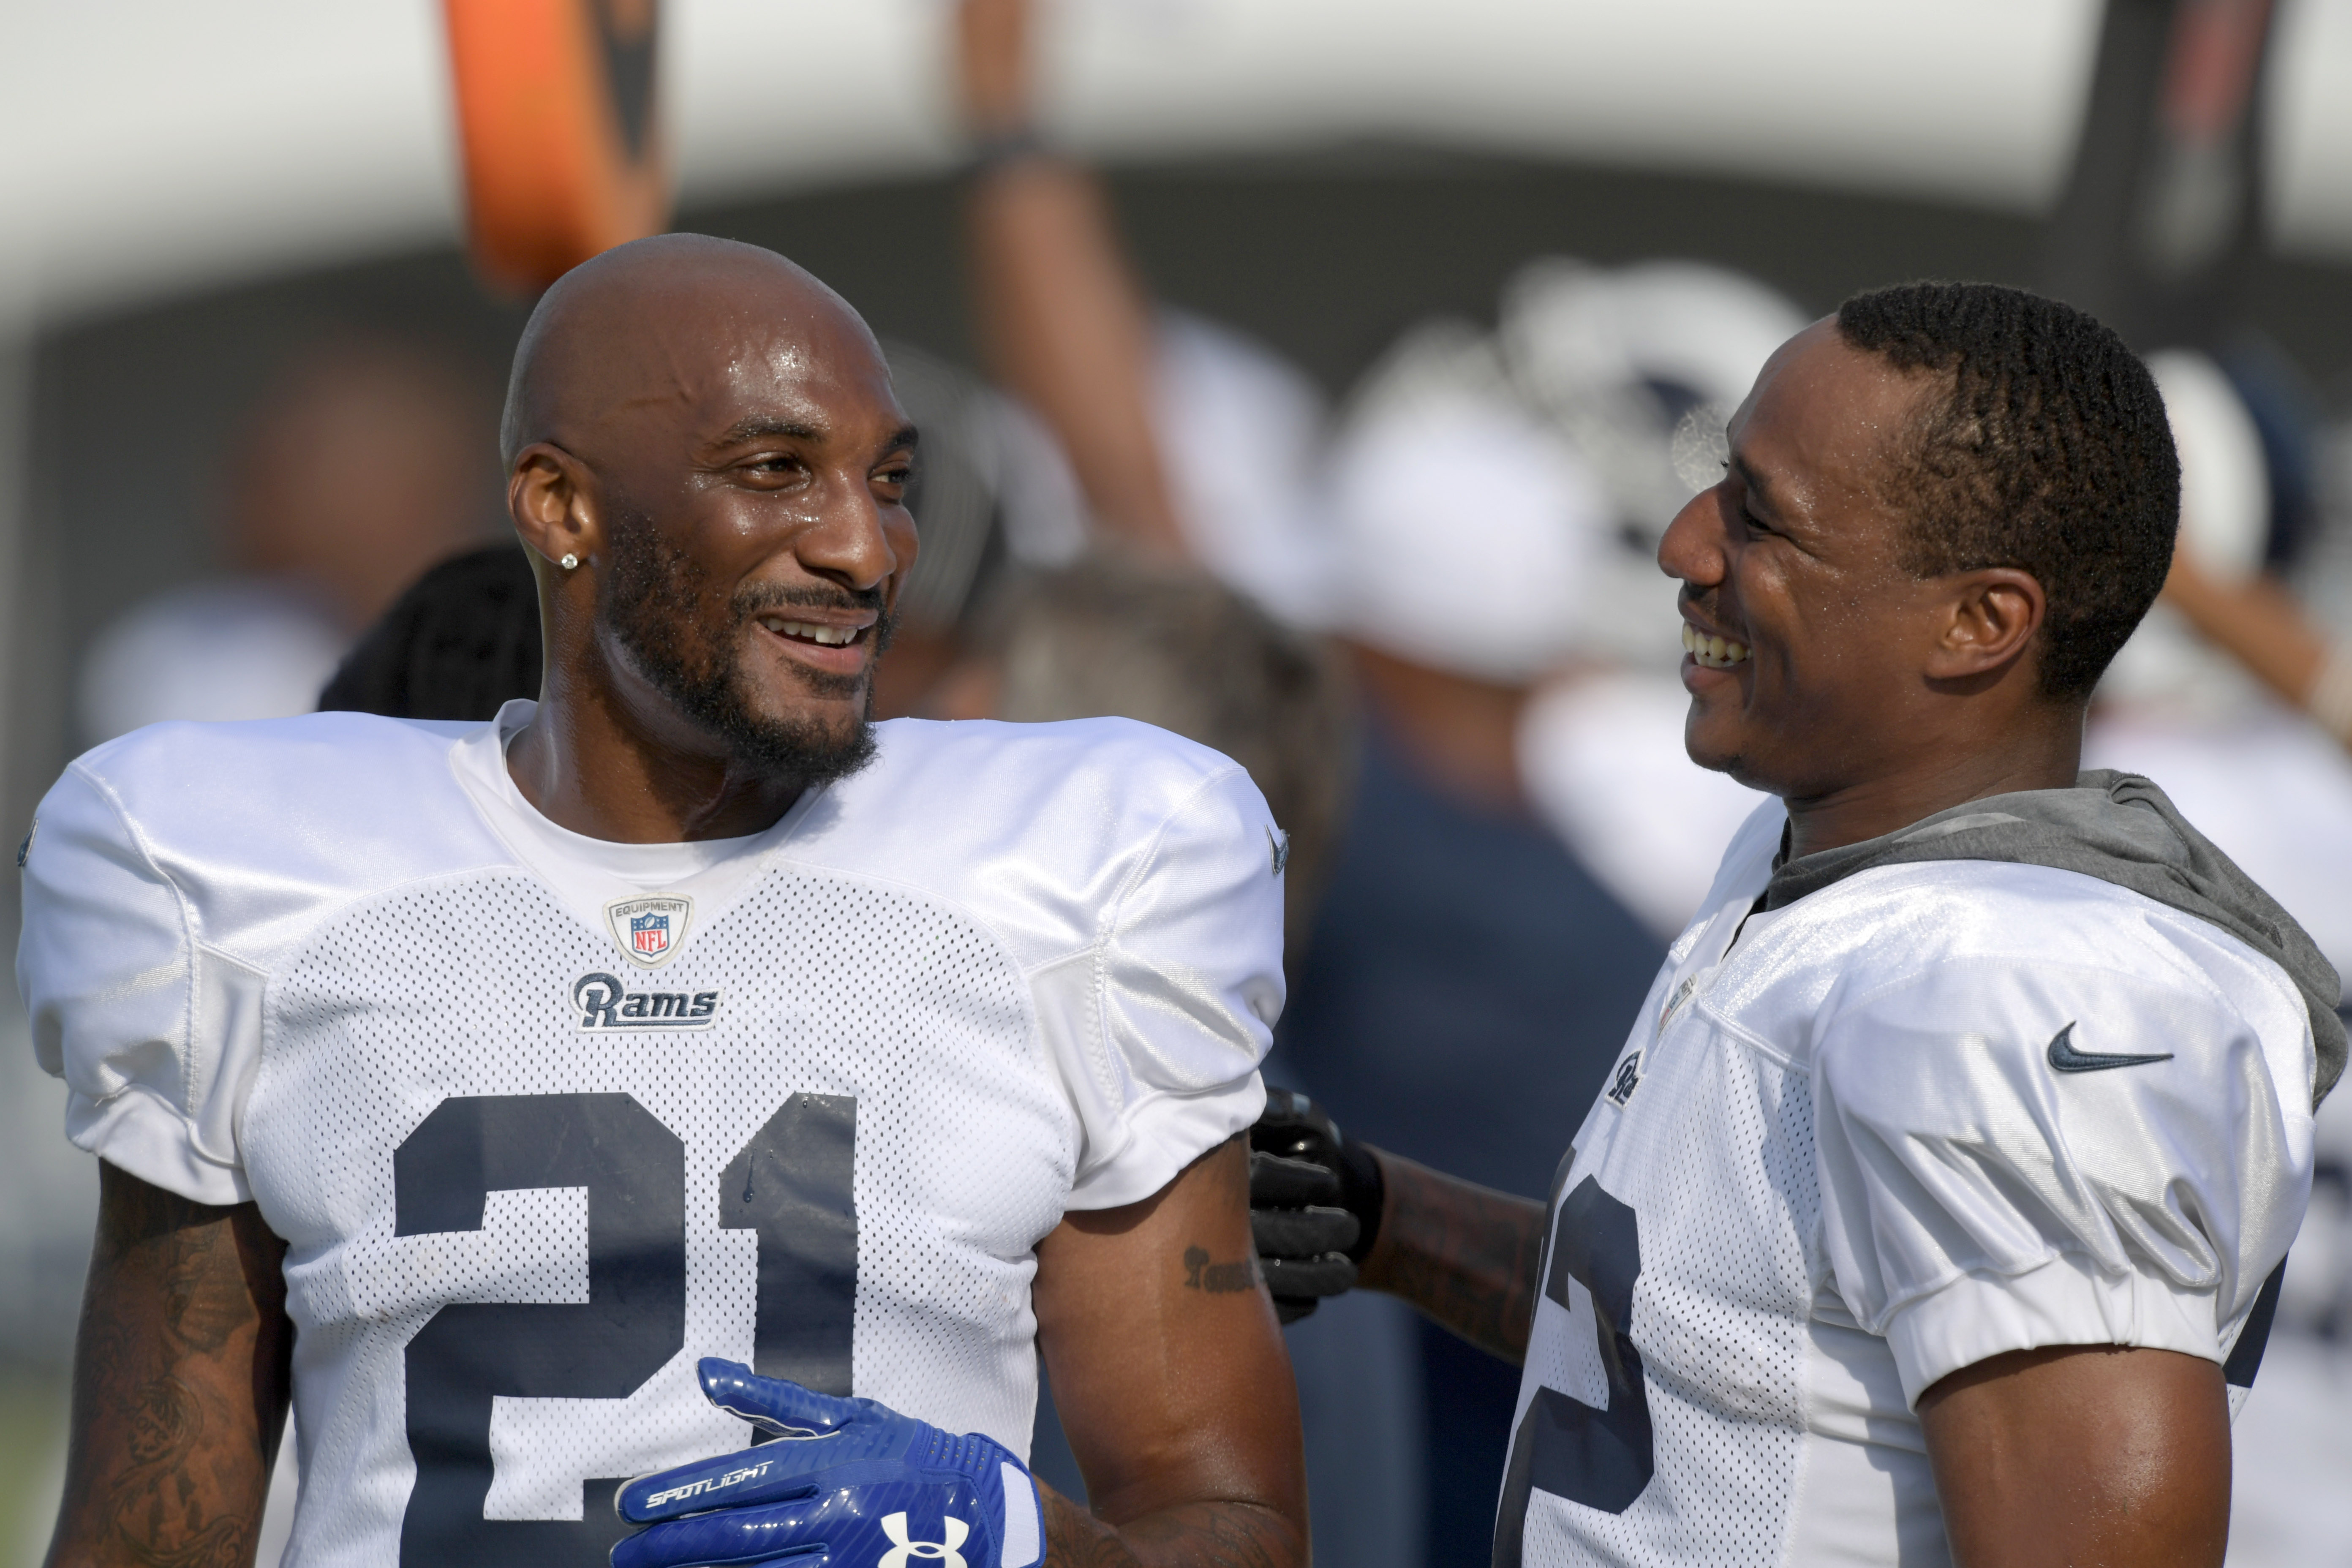 Los Angeles Rams CB Aqib Talib and CB Marcus Peters share a laugh at training camp at UC Irvine, Jul. 30, 2019.